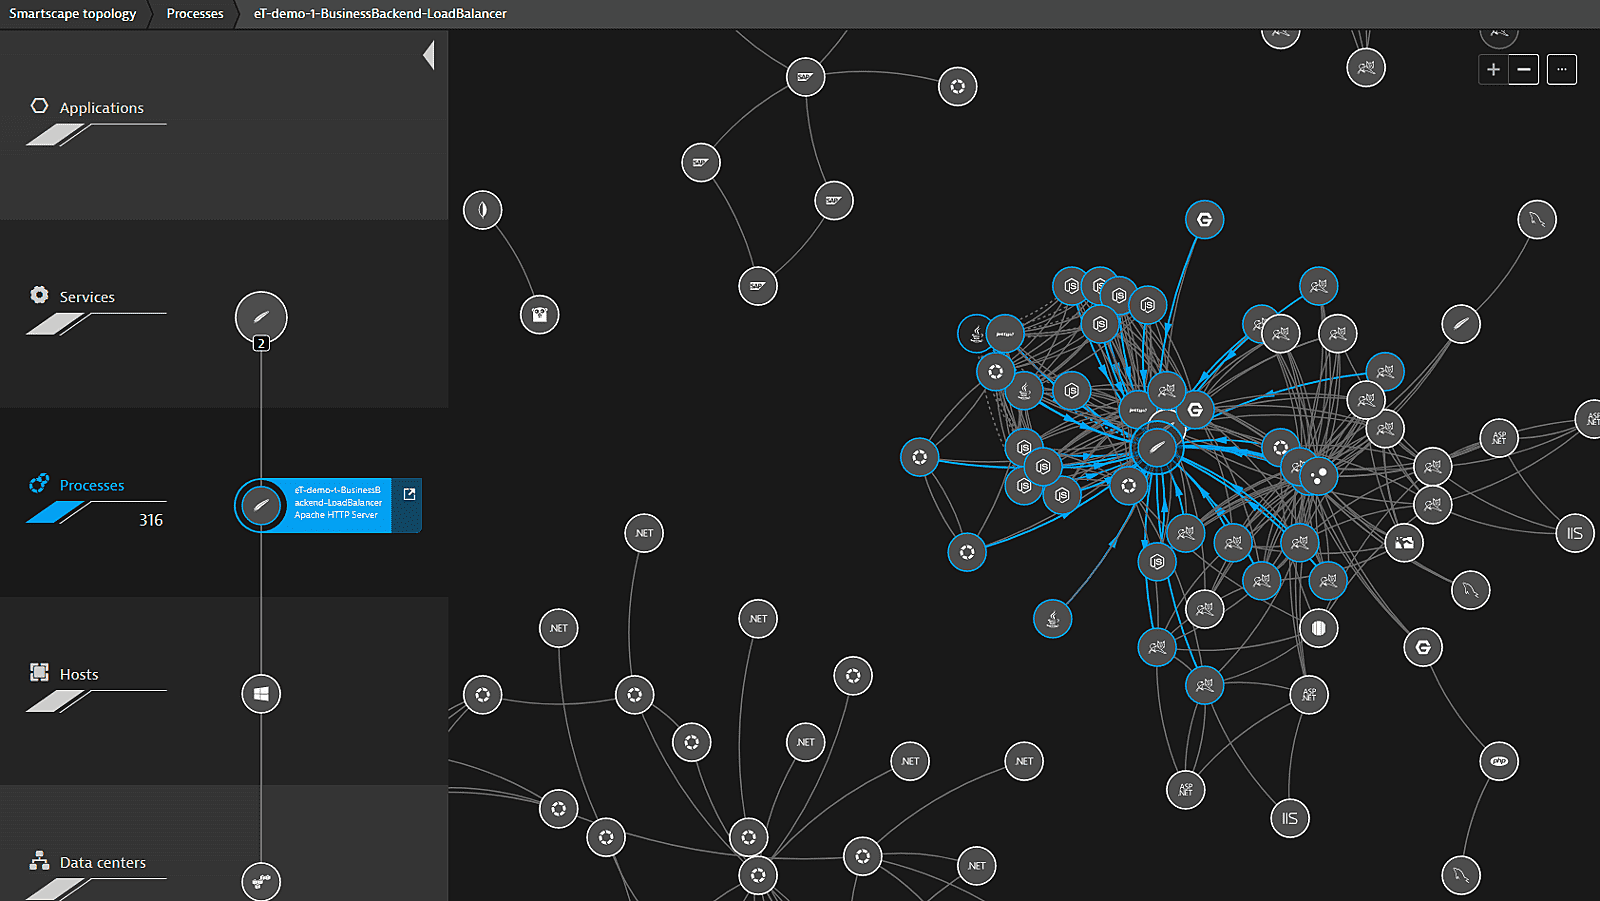 Dynatrace smartscape topology automatic dependency mapping